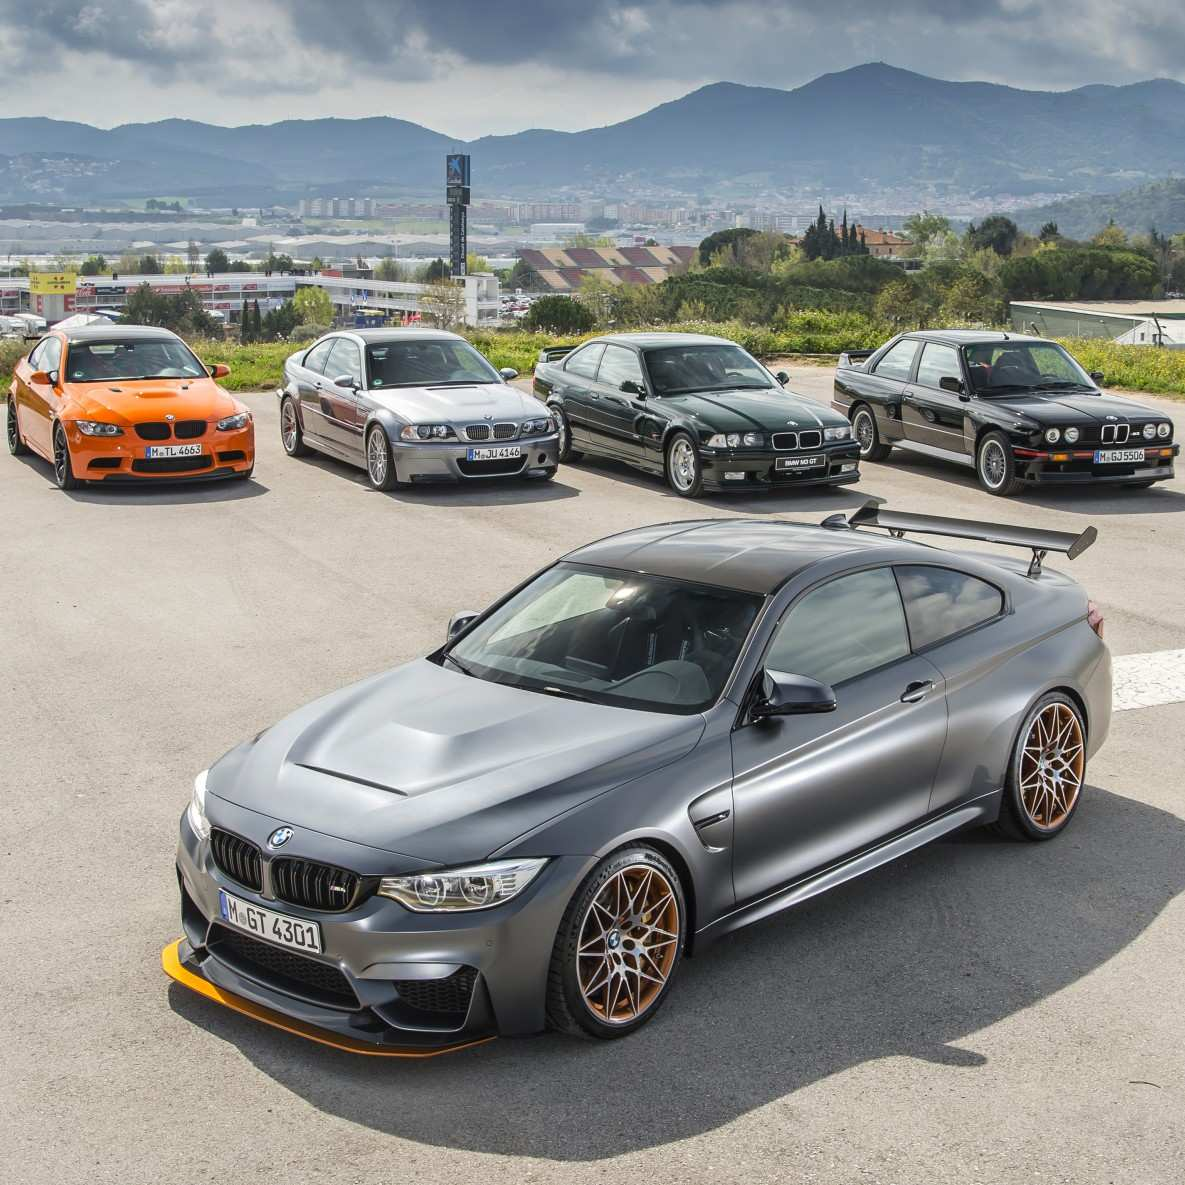 39 The 2020 BMW M4 Gts Pictures